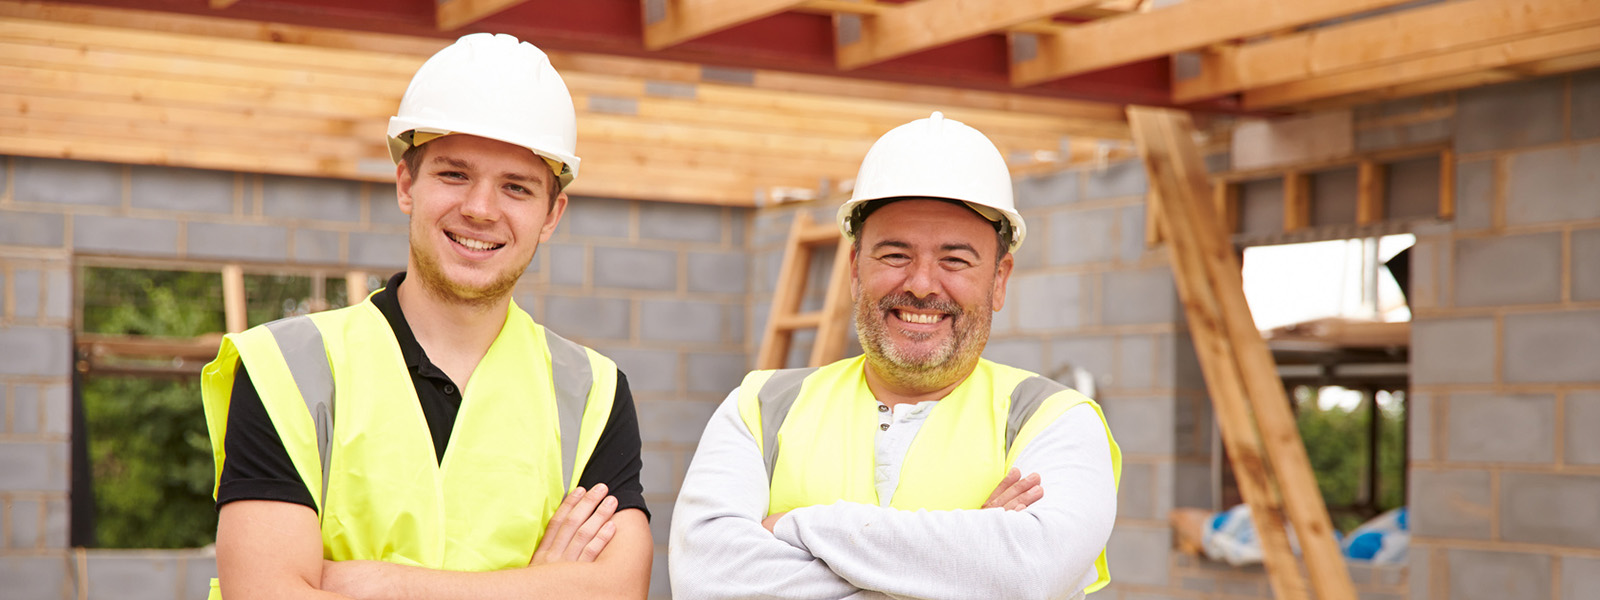 Construction workers on site. Changes to the CSCS card process.